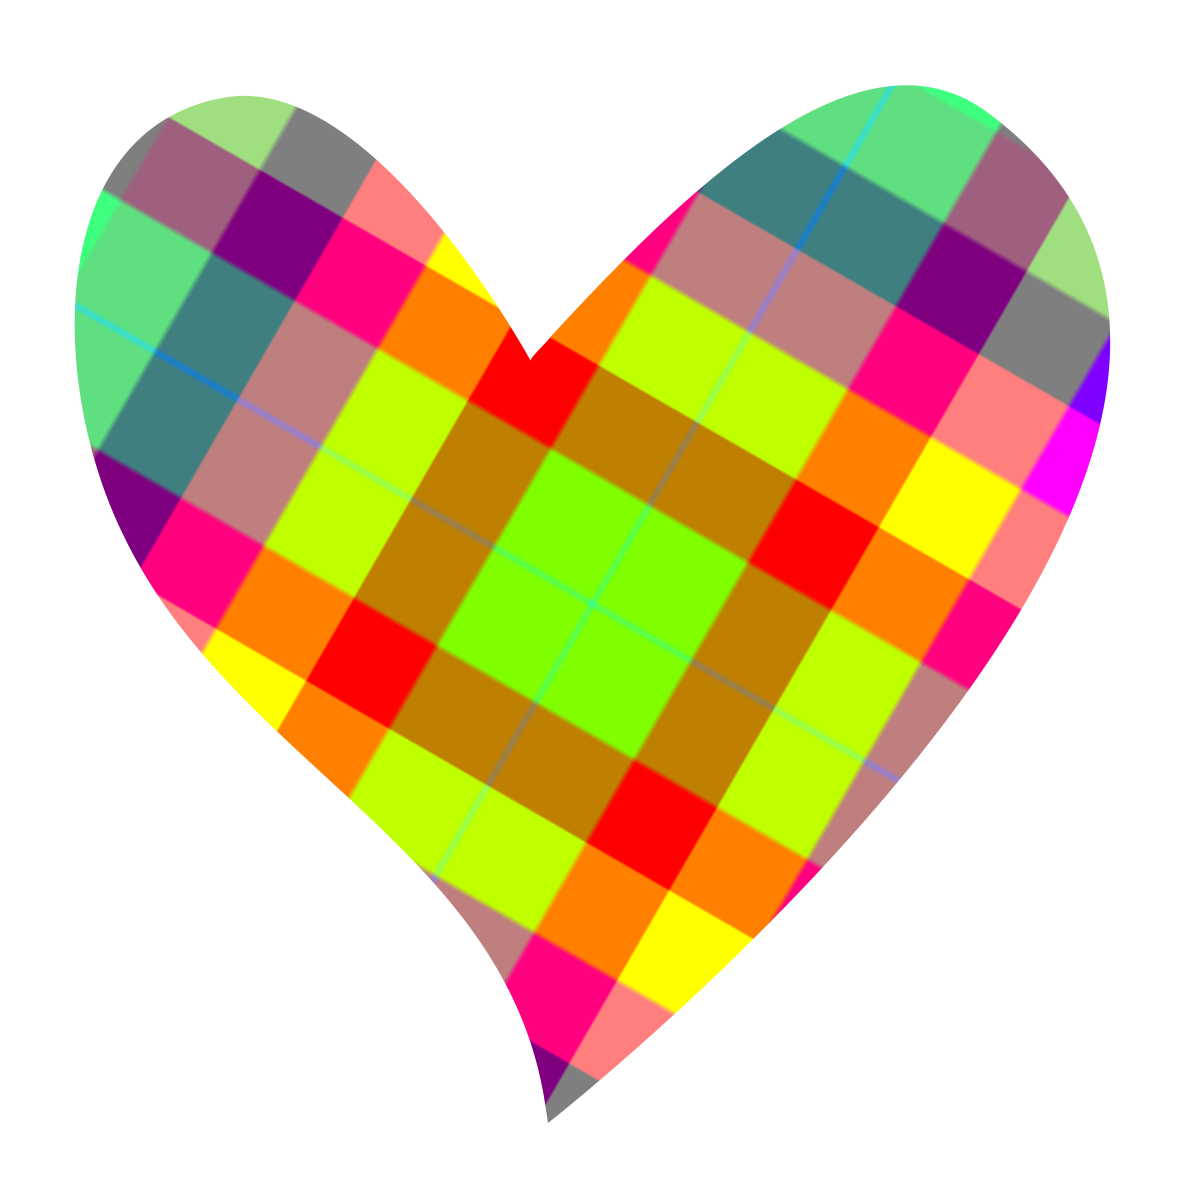 Heart-shaped clipart heart shape #5